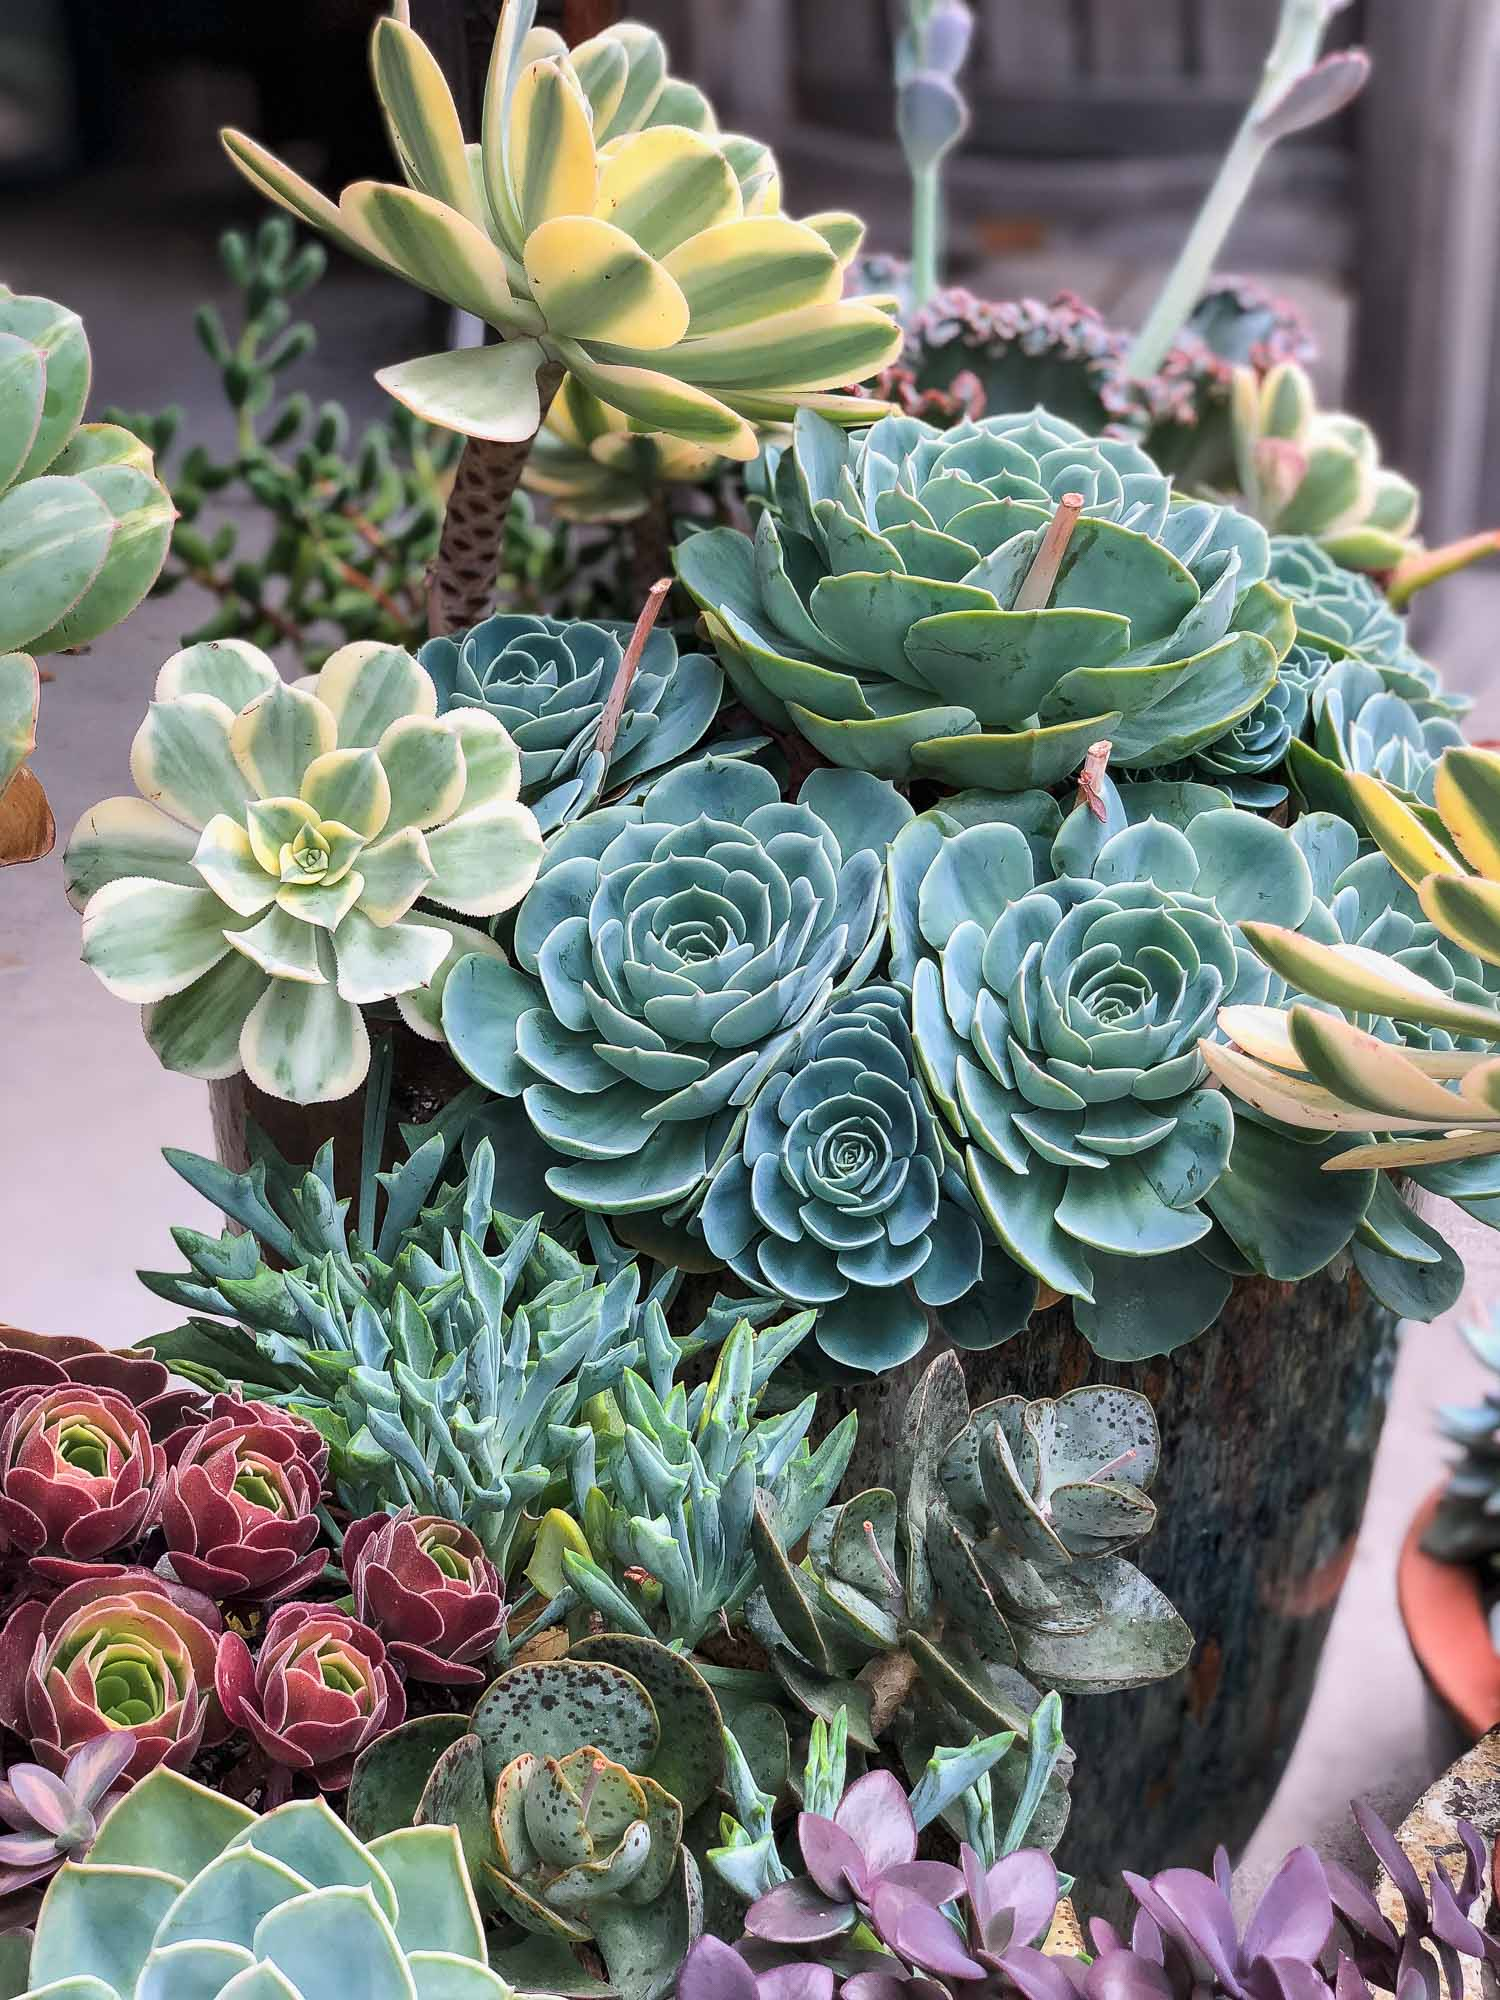 In General, Succulents Love Rain Water And Seem Less Prone To Rot When  Compared To Receiving The Same Amount Of Water From A Garden Hose.